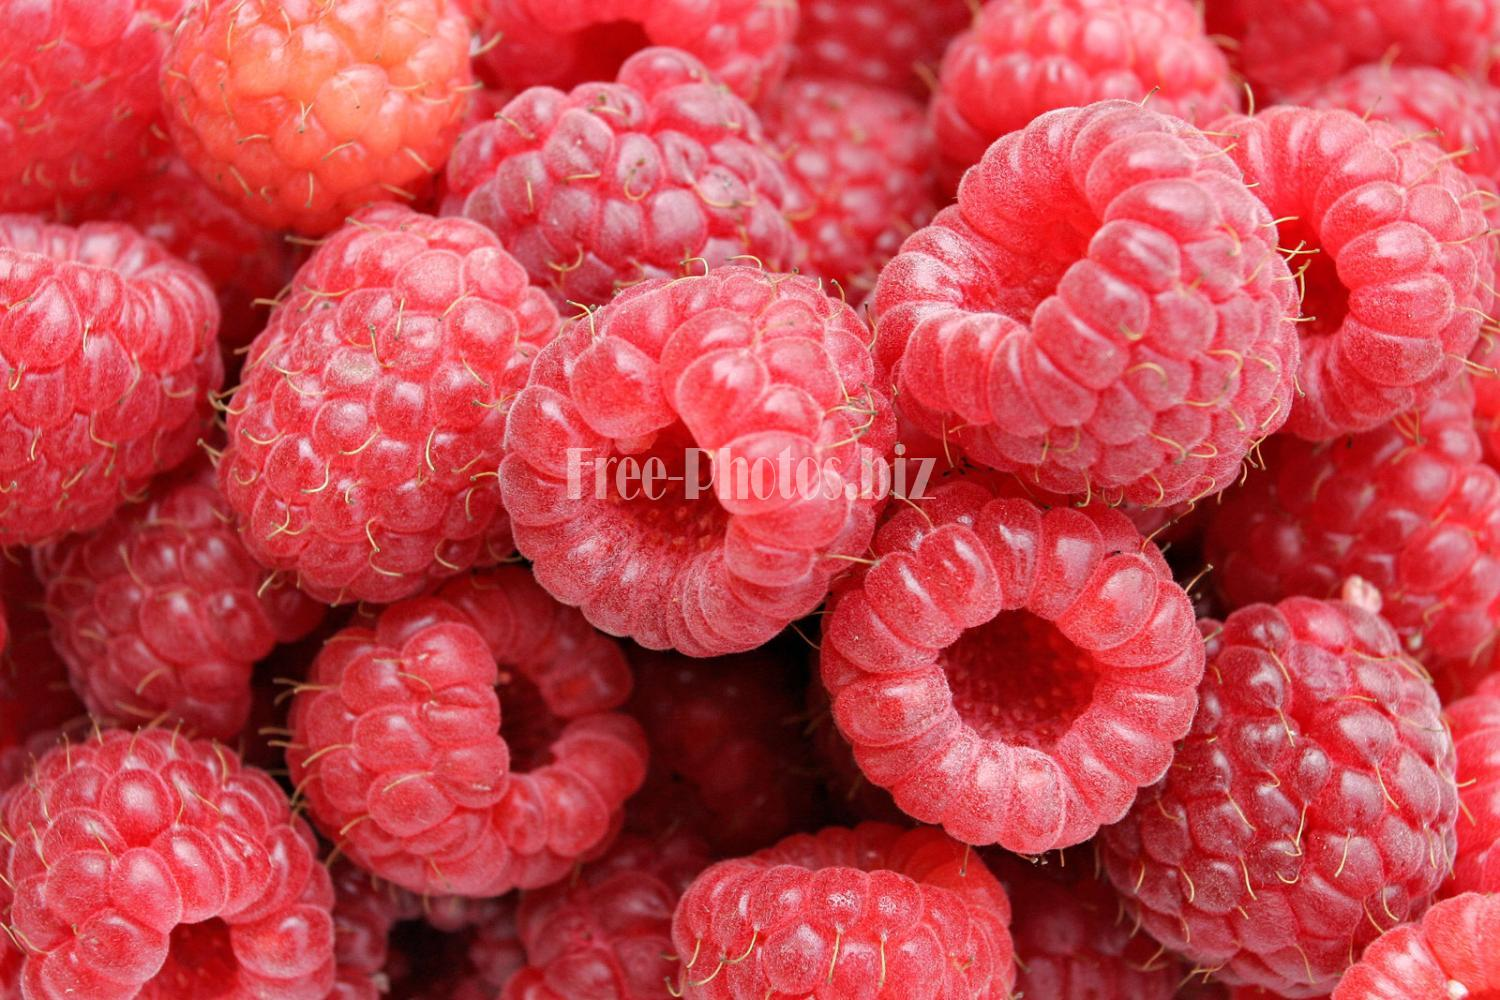 Raspberries, picture 1